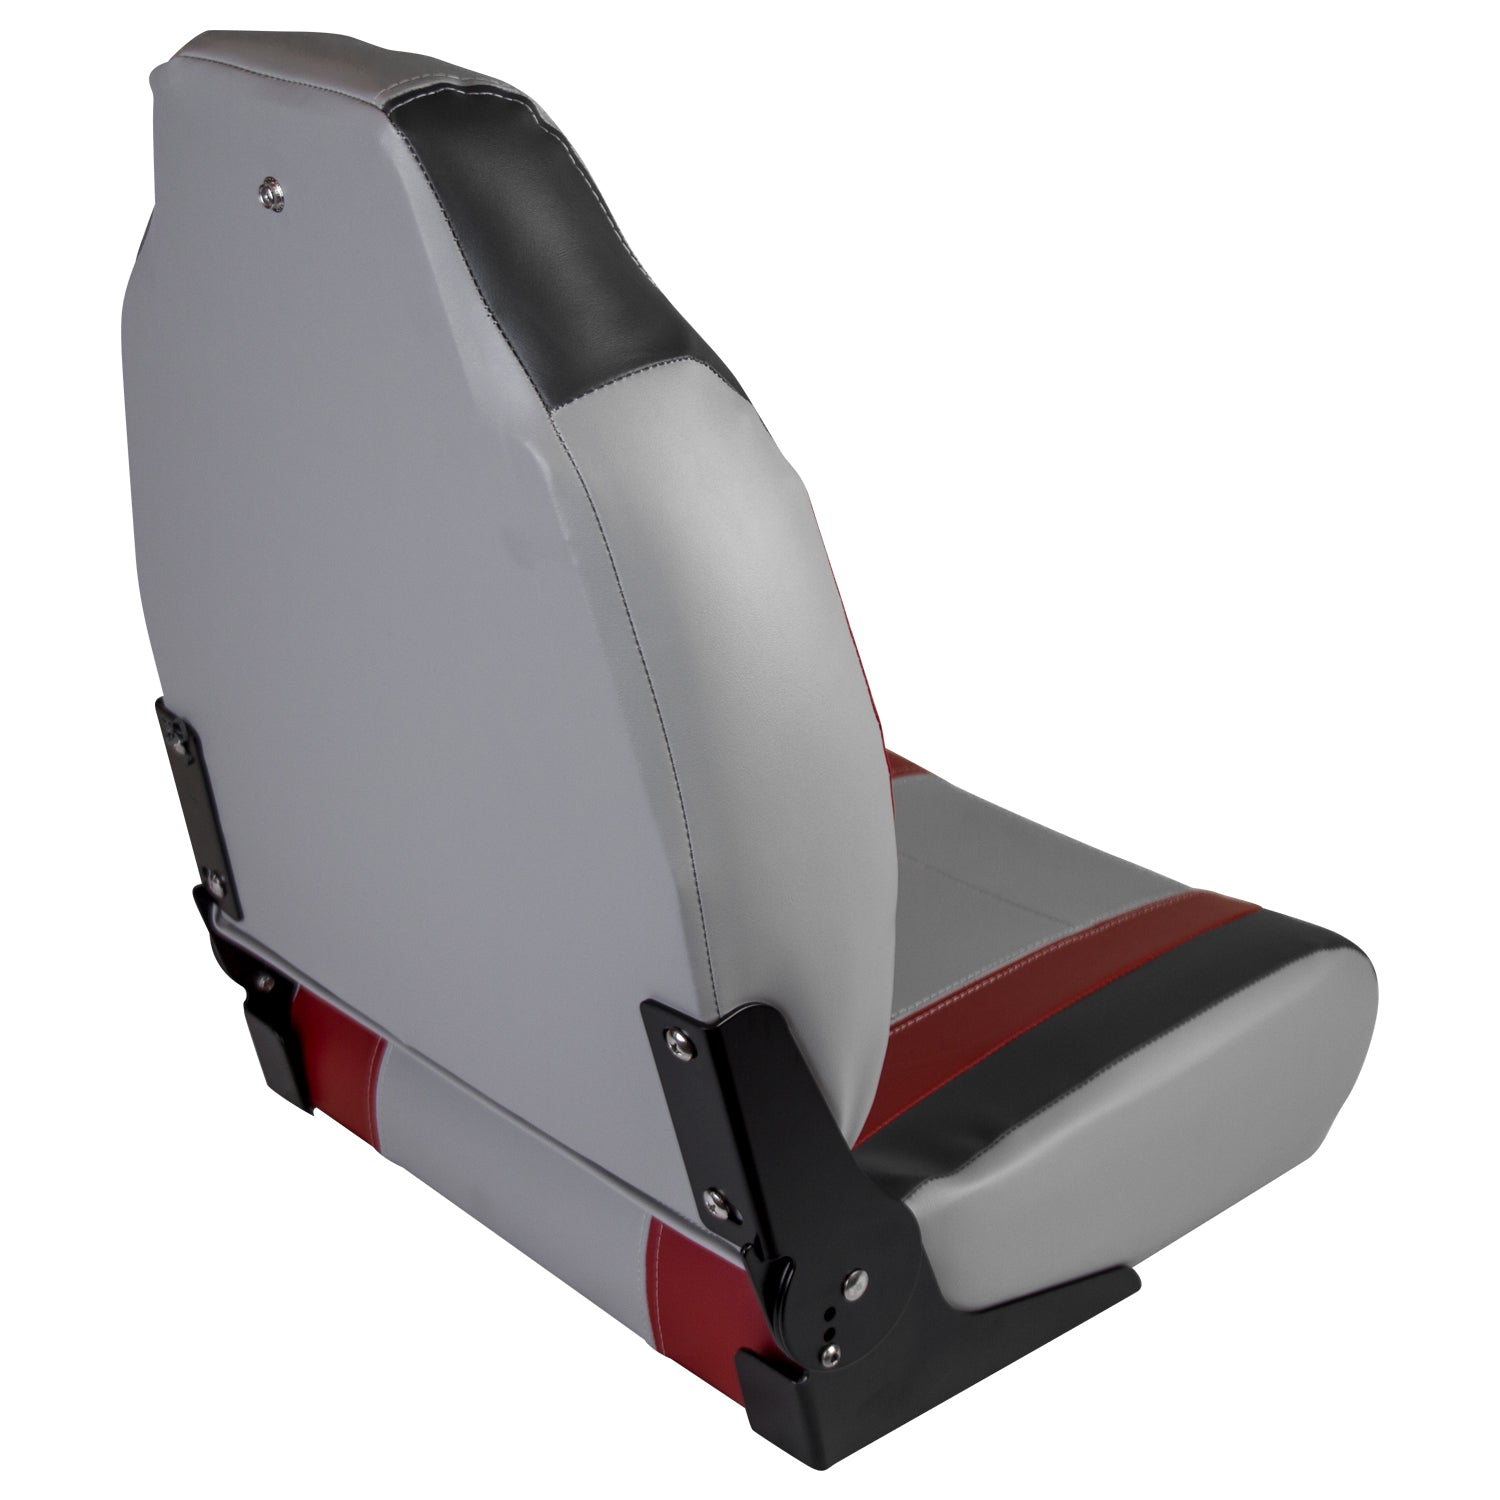 Wise 8WD717 Bass Boat High Back Fishing Seat – Wise Seats